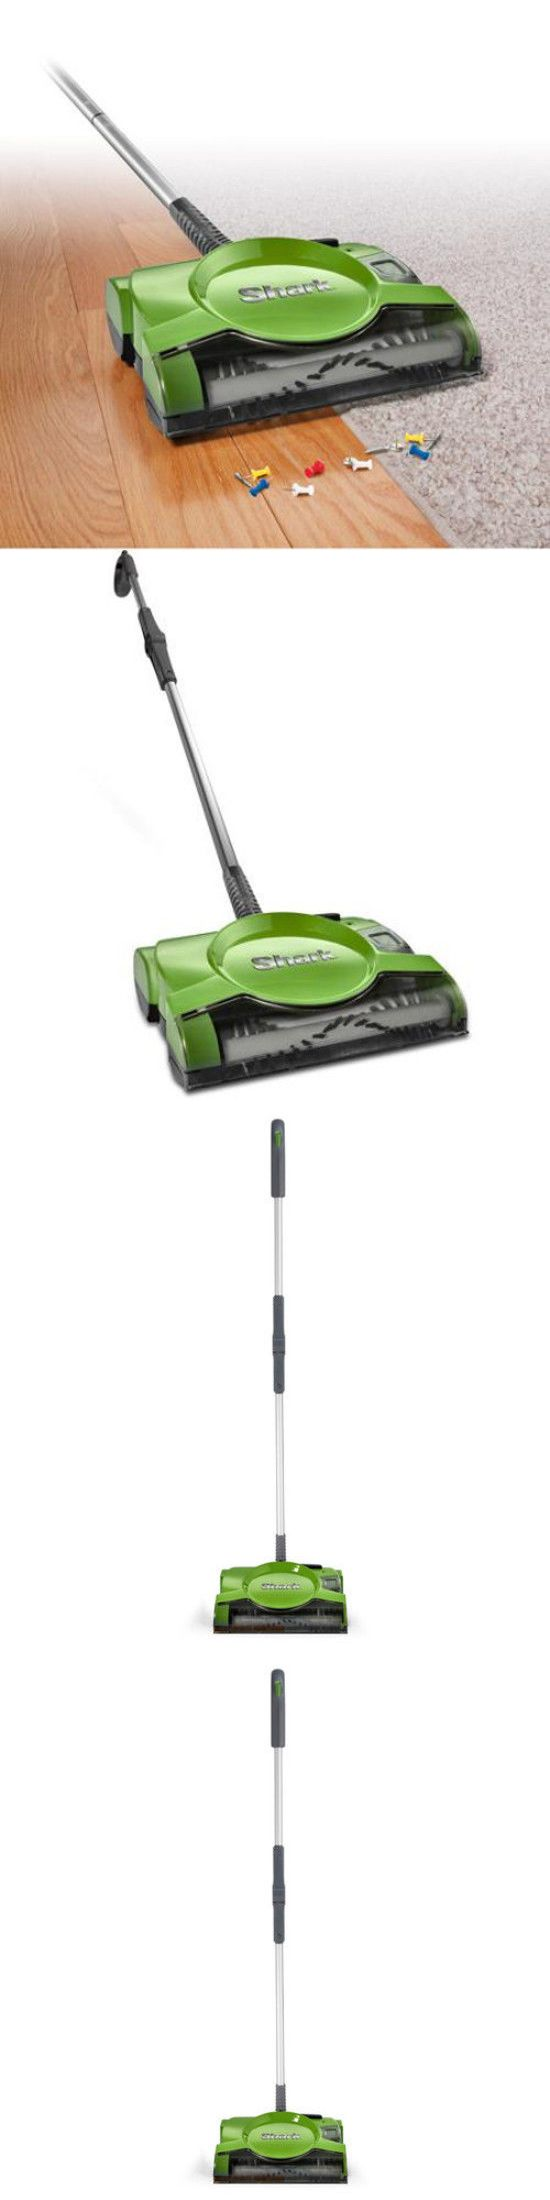 Carpet and Floor Sweepers 79657: Shark Swivel Cordless Sweeper Rechargeable Stick Vacuum Cleaner Floor Carpet -> BUY IT NOW ONLY: $48 on eBay!